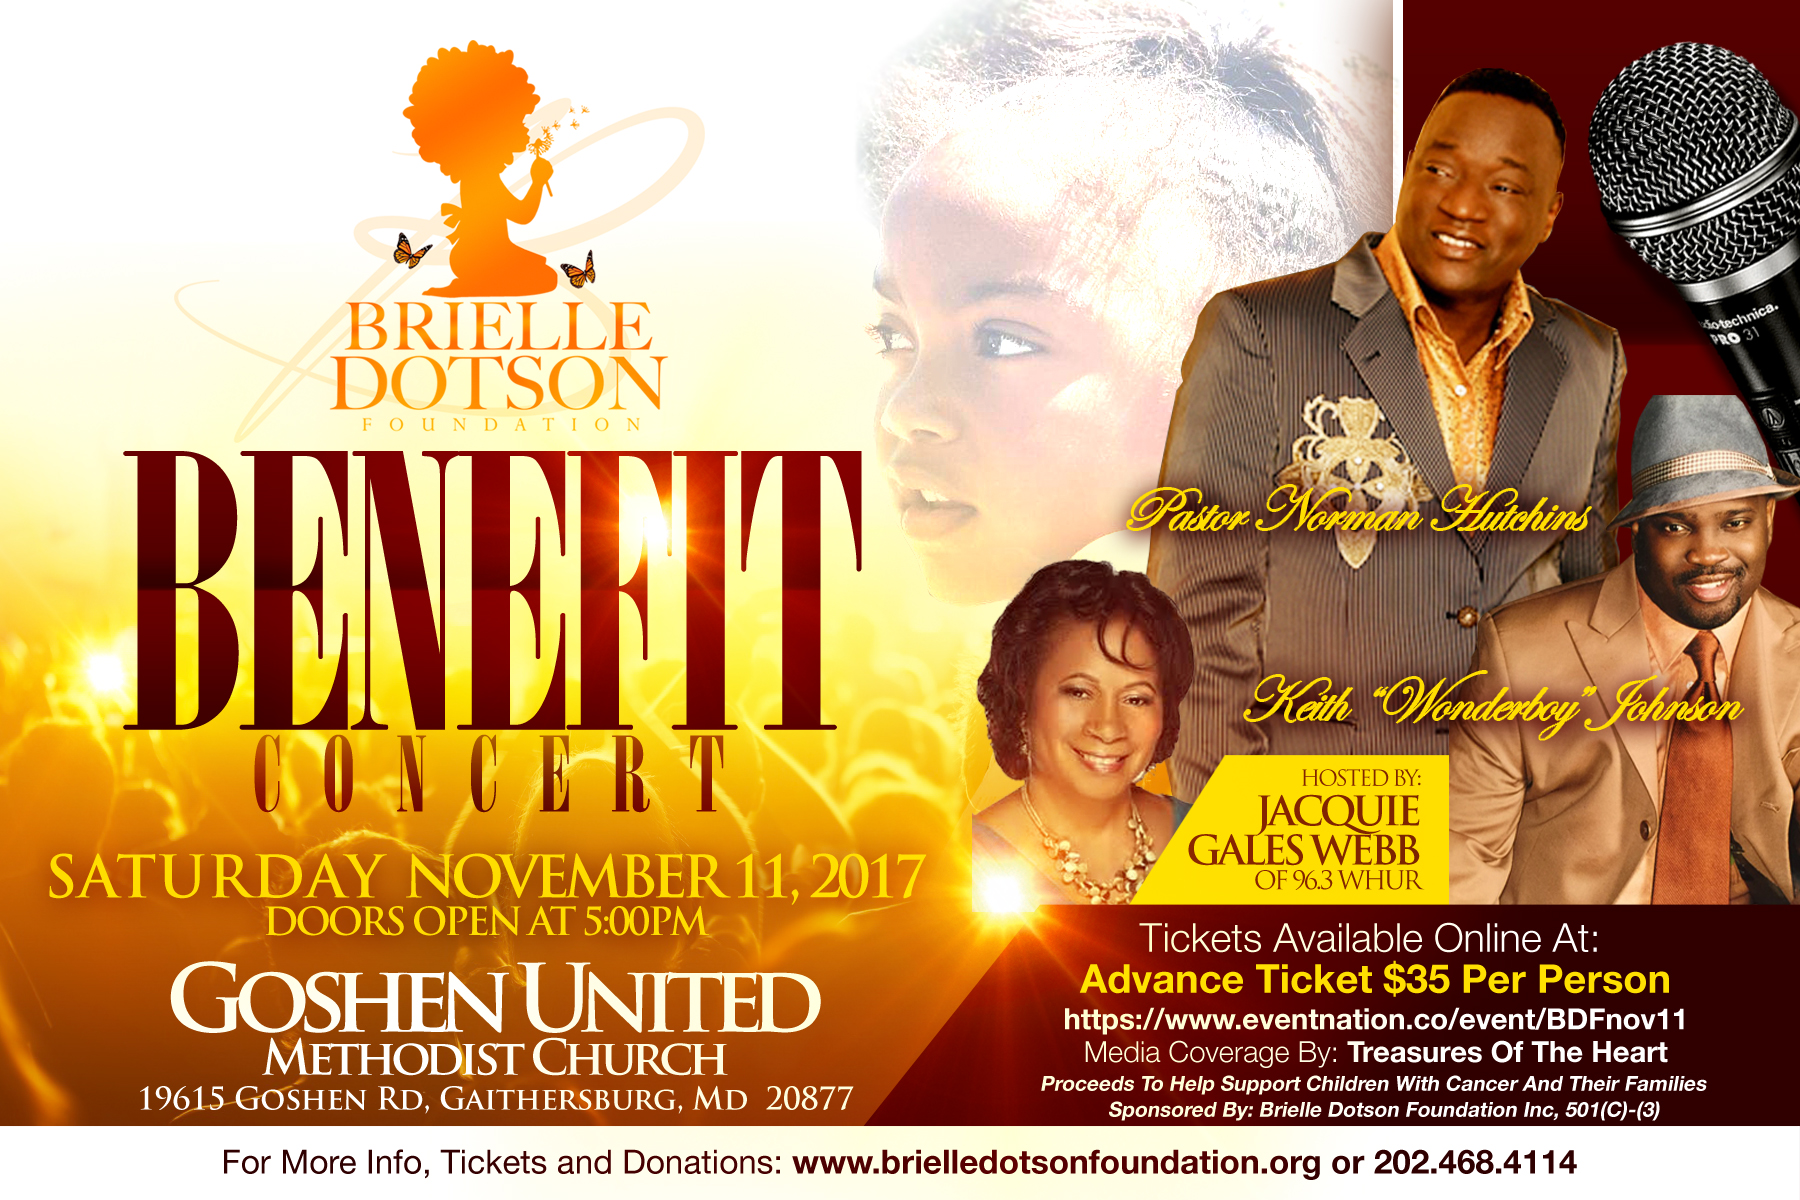 Brielle Dotson Foundation Benefit Concert